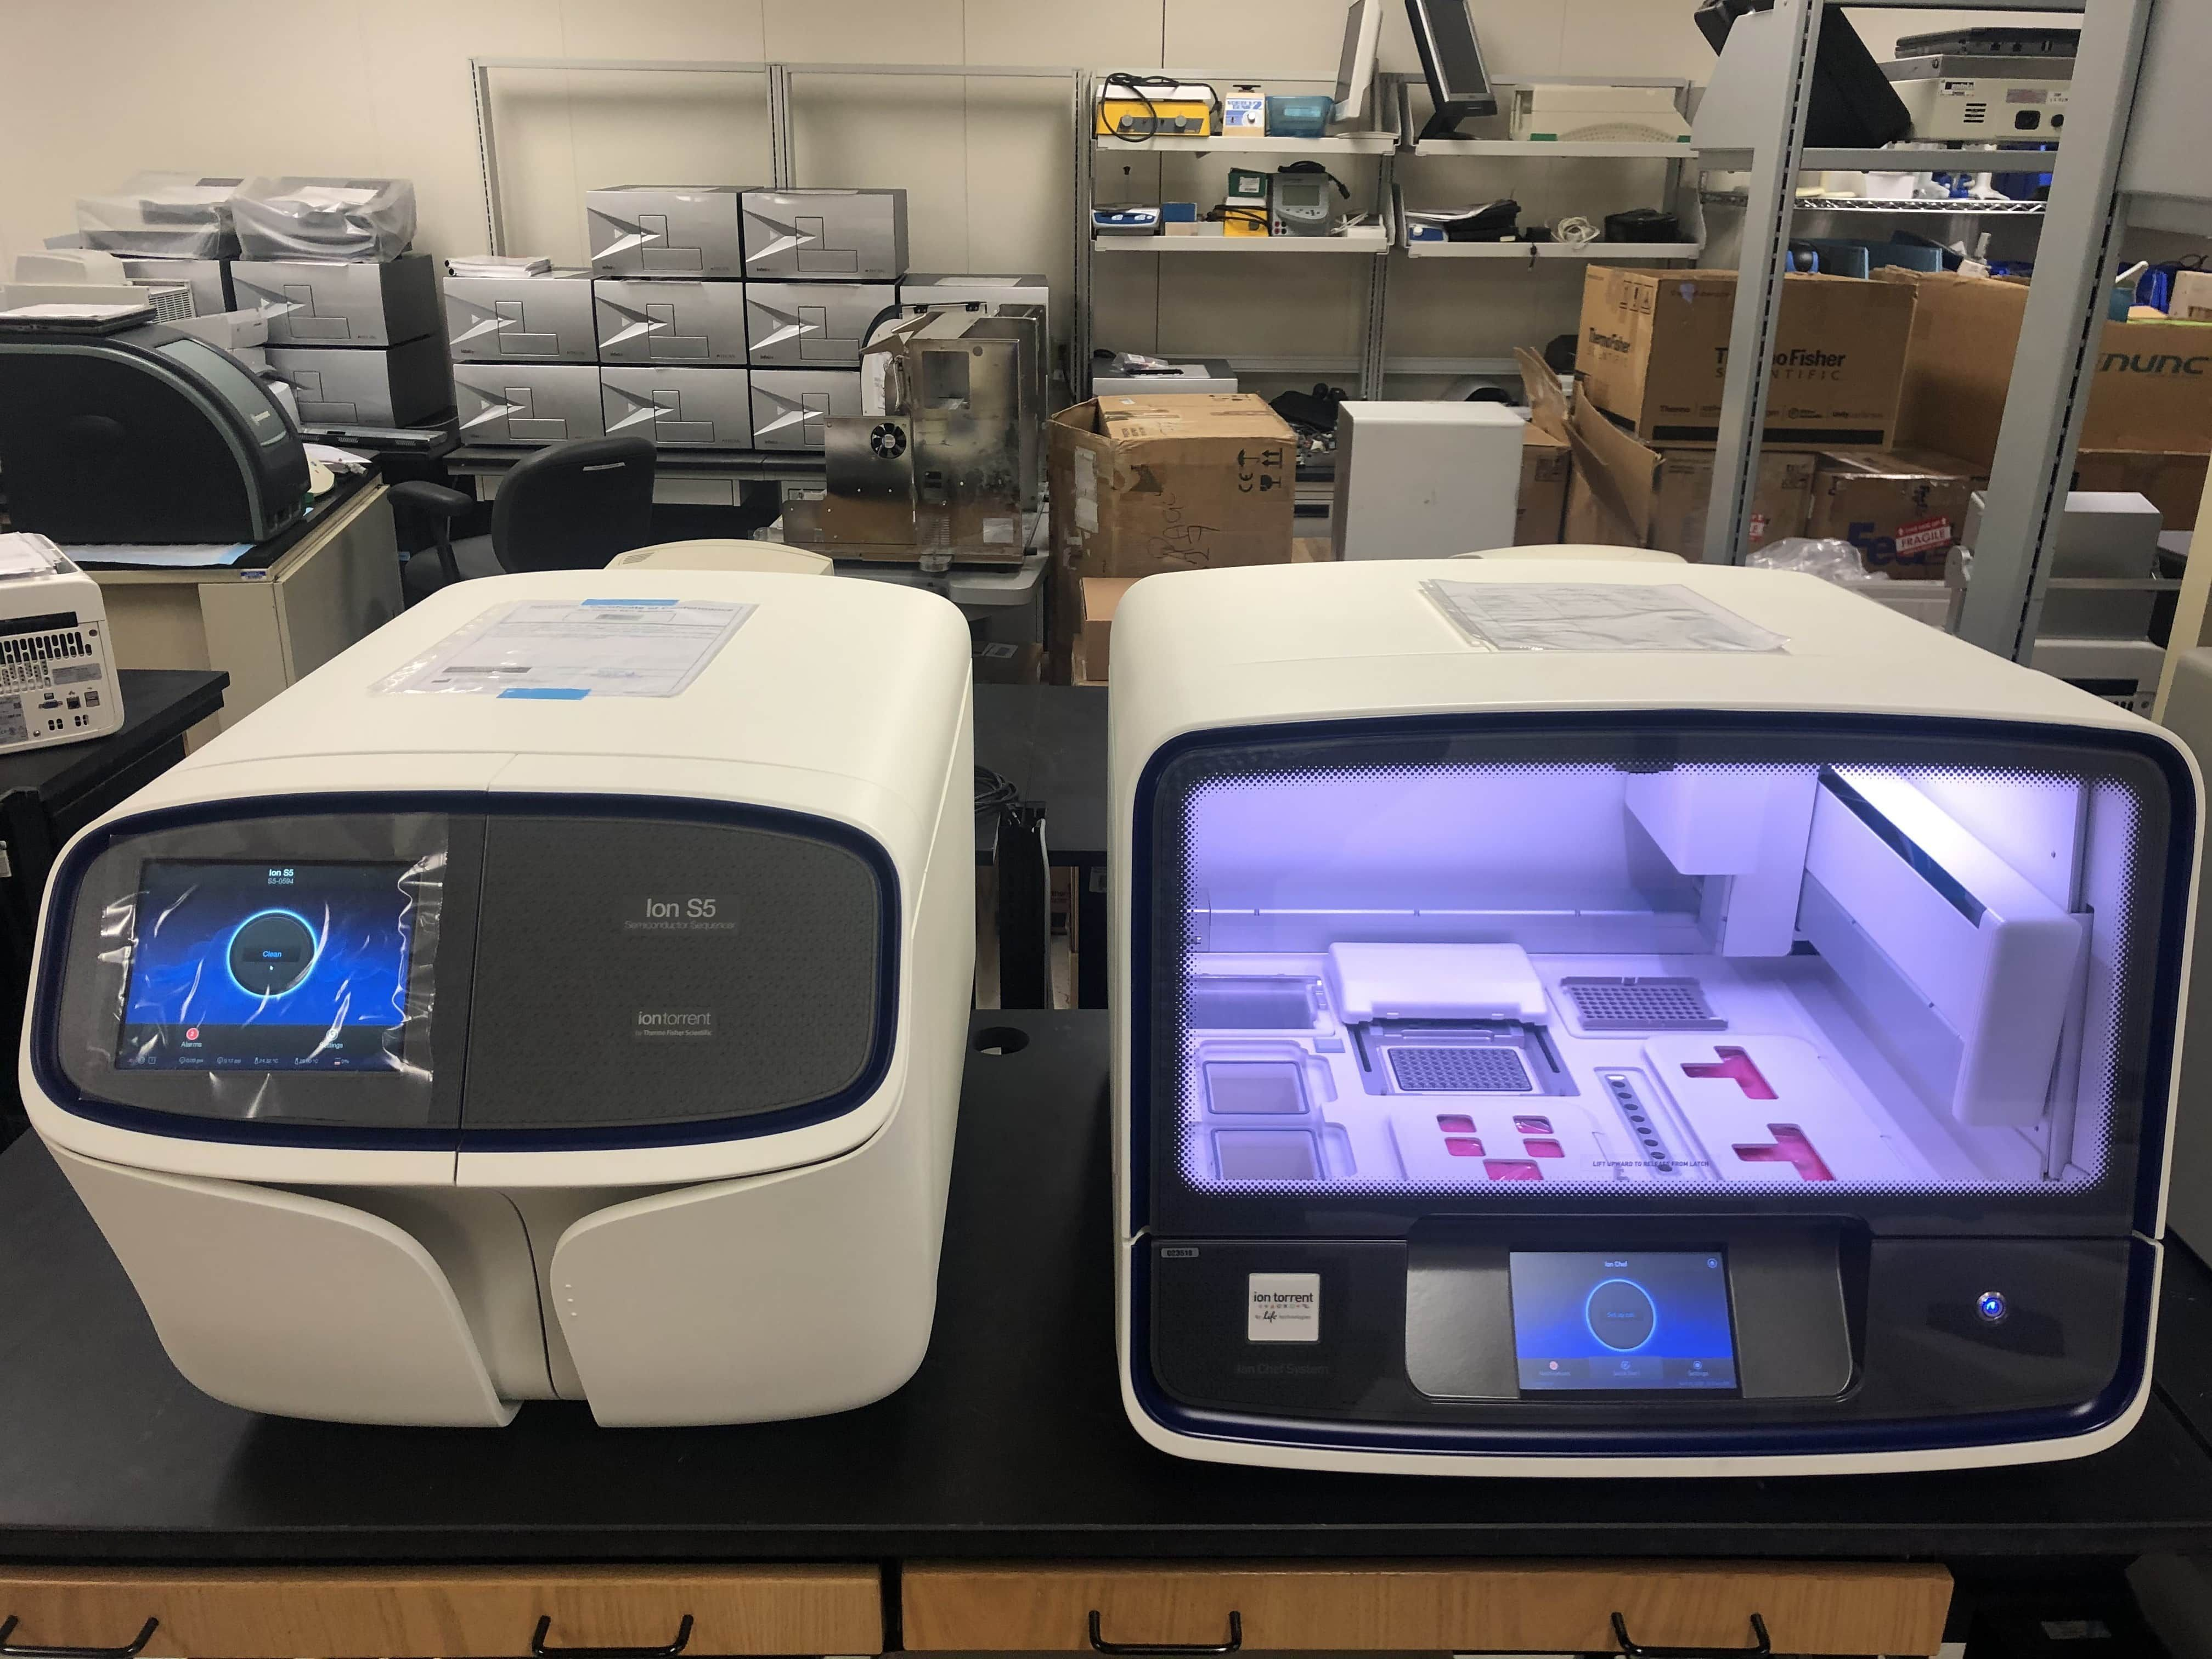 Thermo Ion S5 Plus Sequencer NGS System-Brand New S5 NGS Sequencer